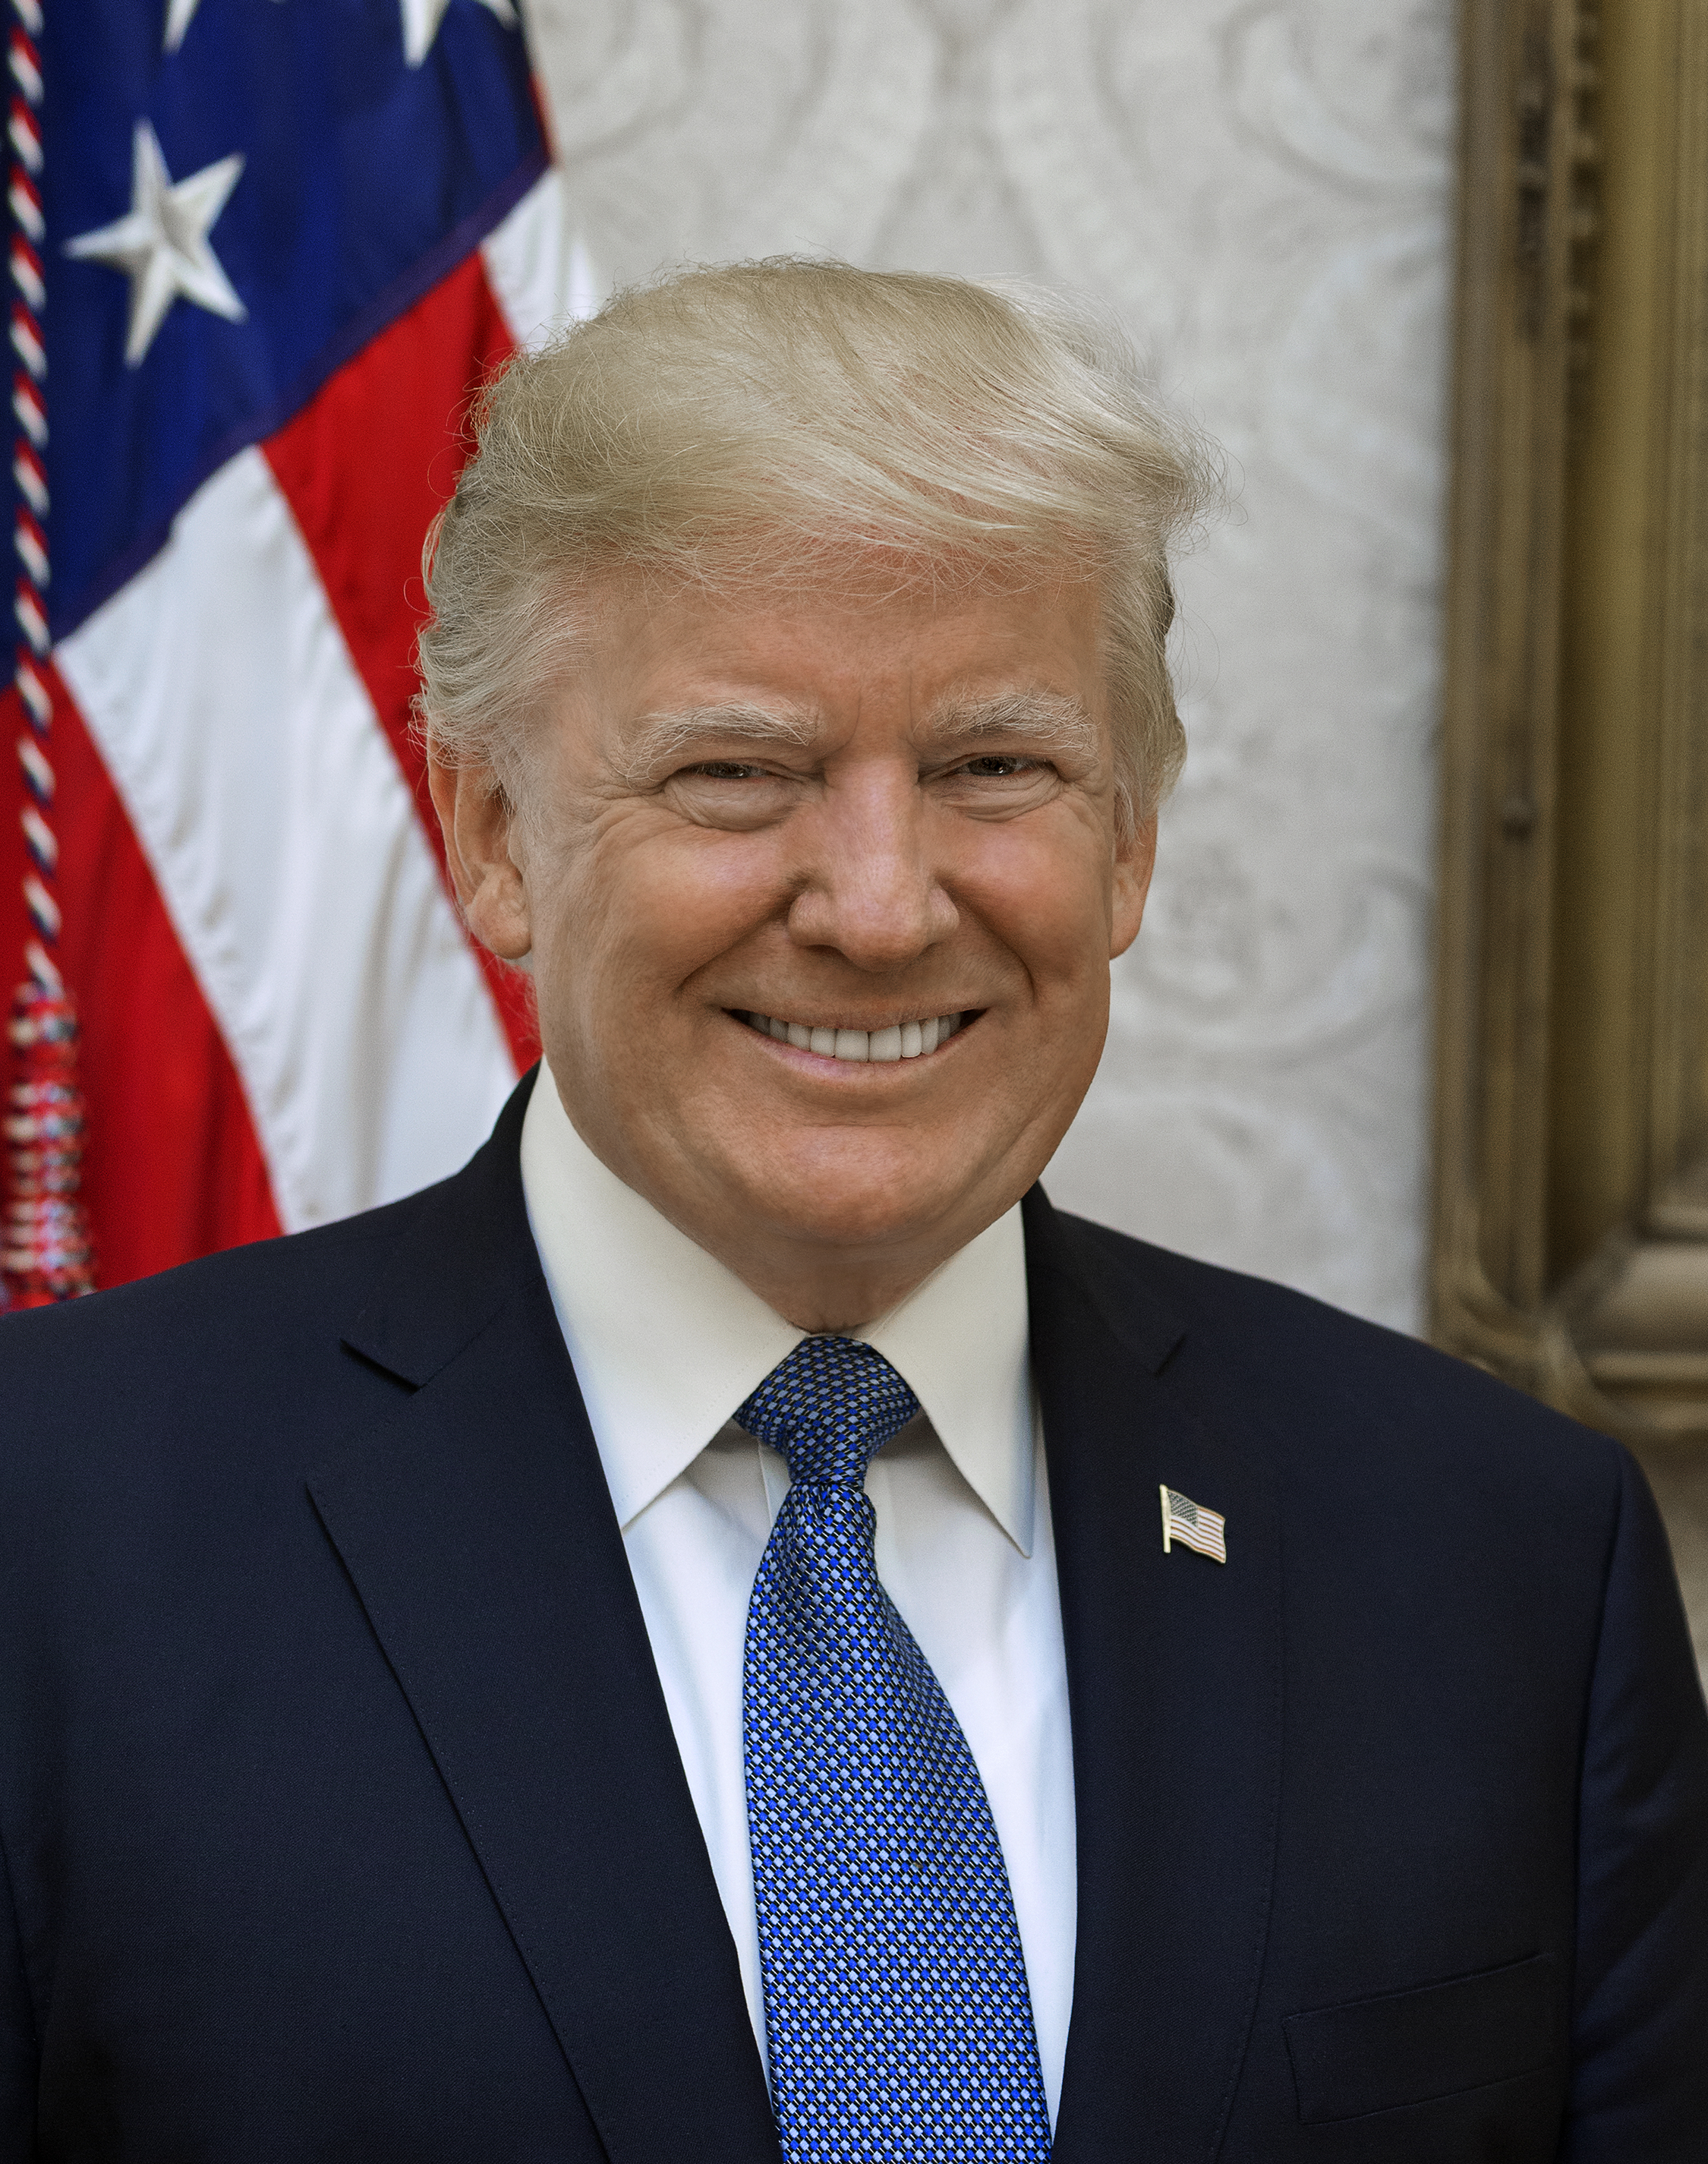 President Donald J. Trump Announces a National Security Strategy to Advance America's Interests | U.S. Embassy in Niger